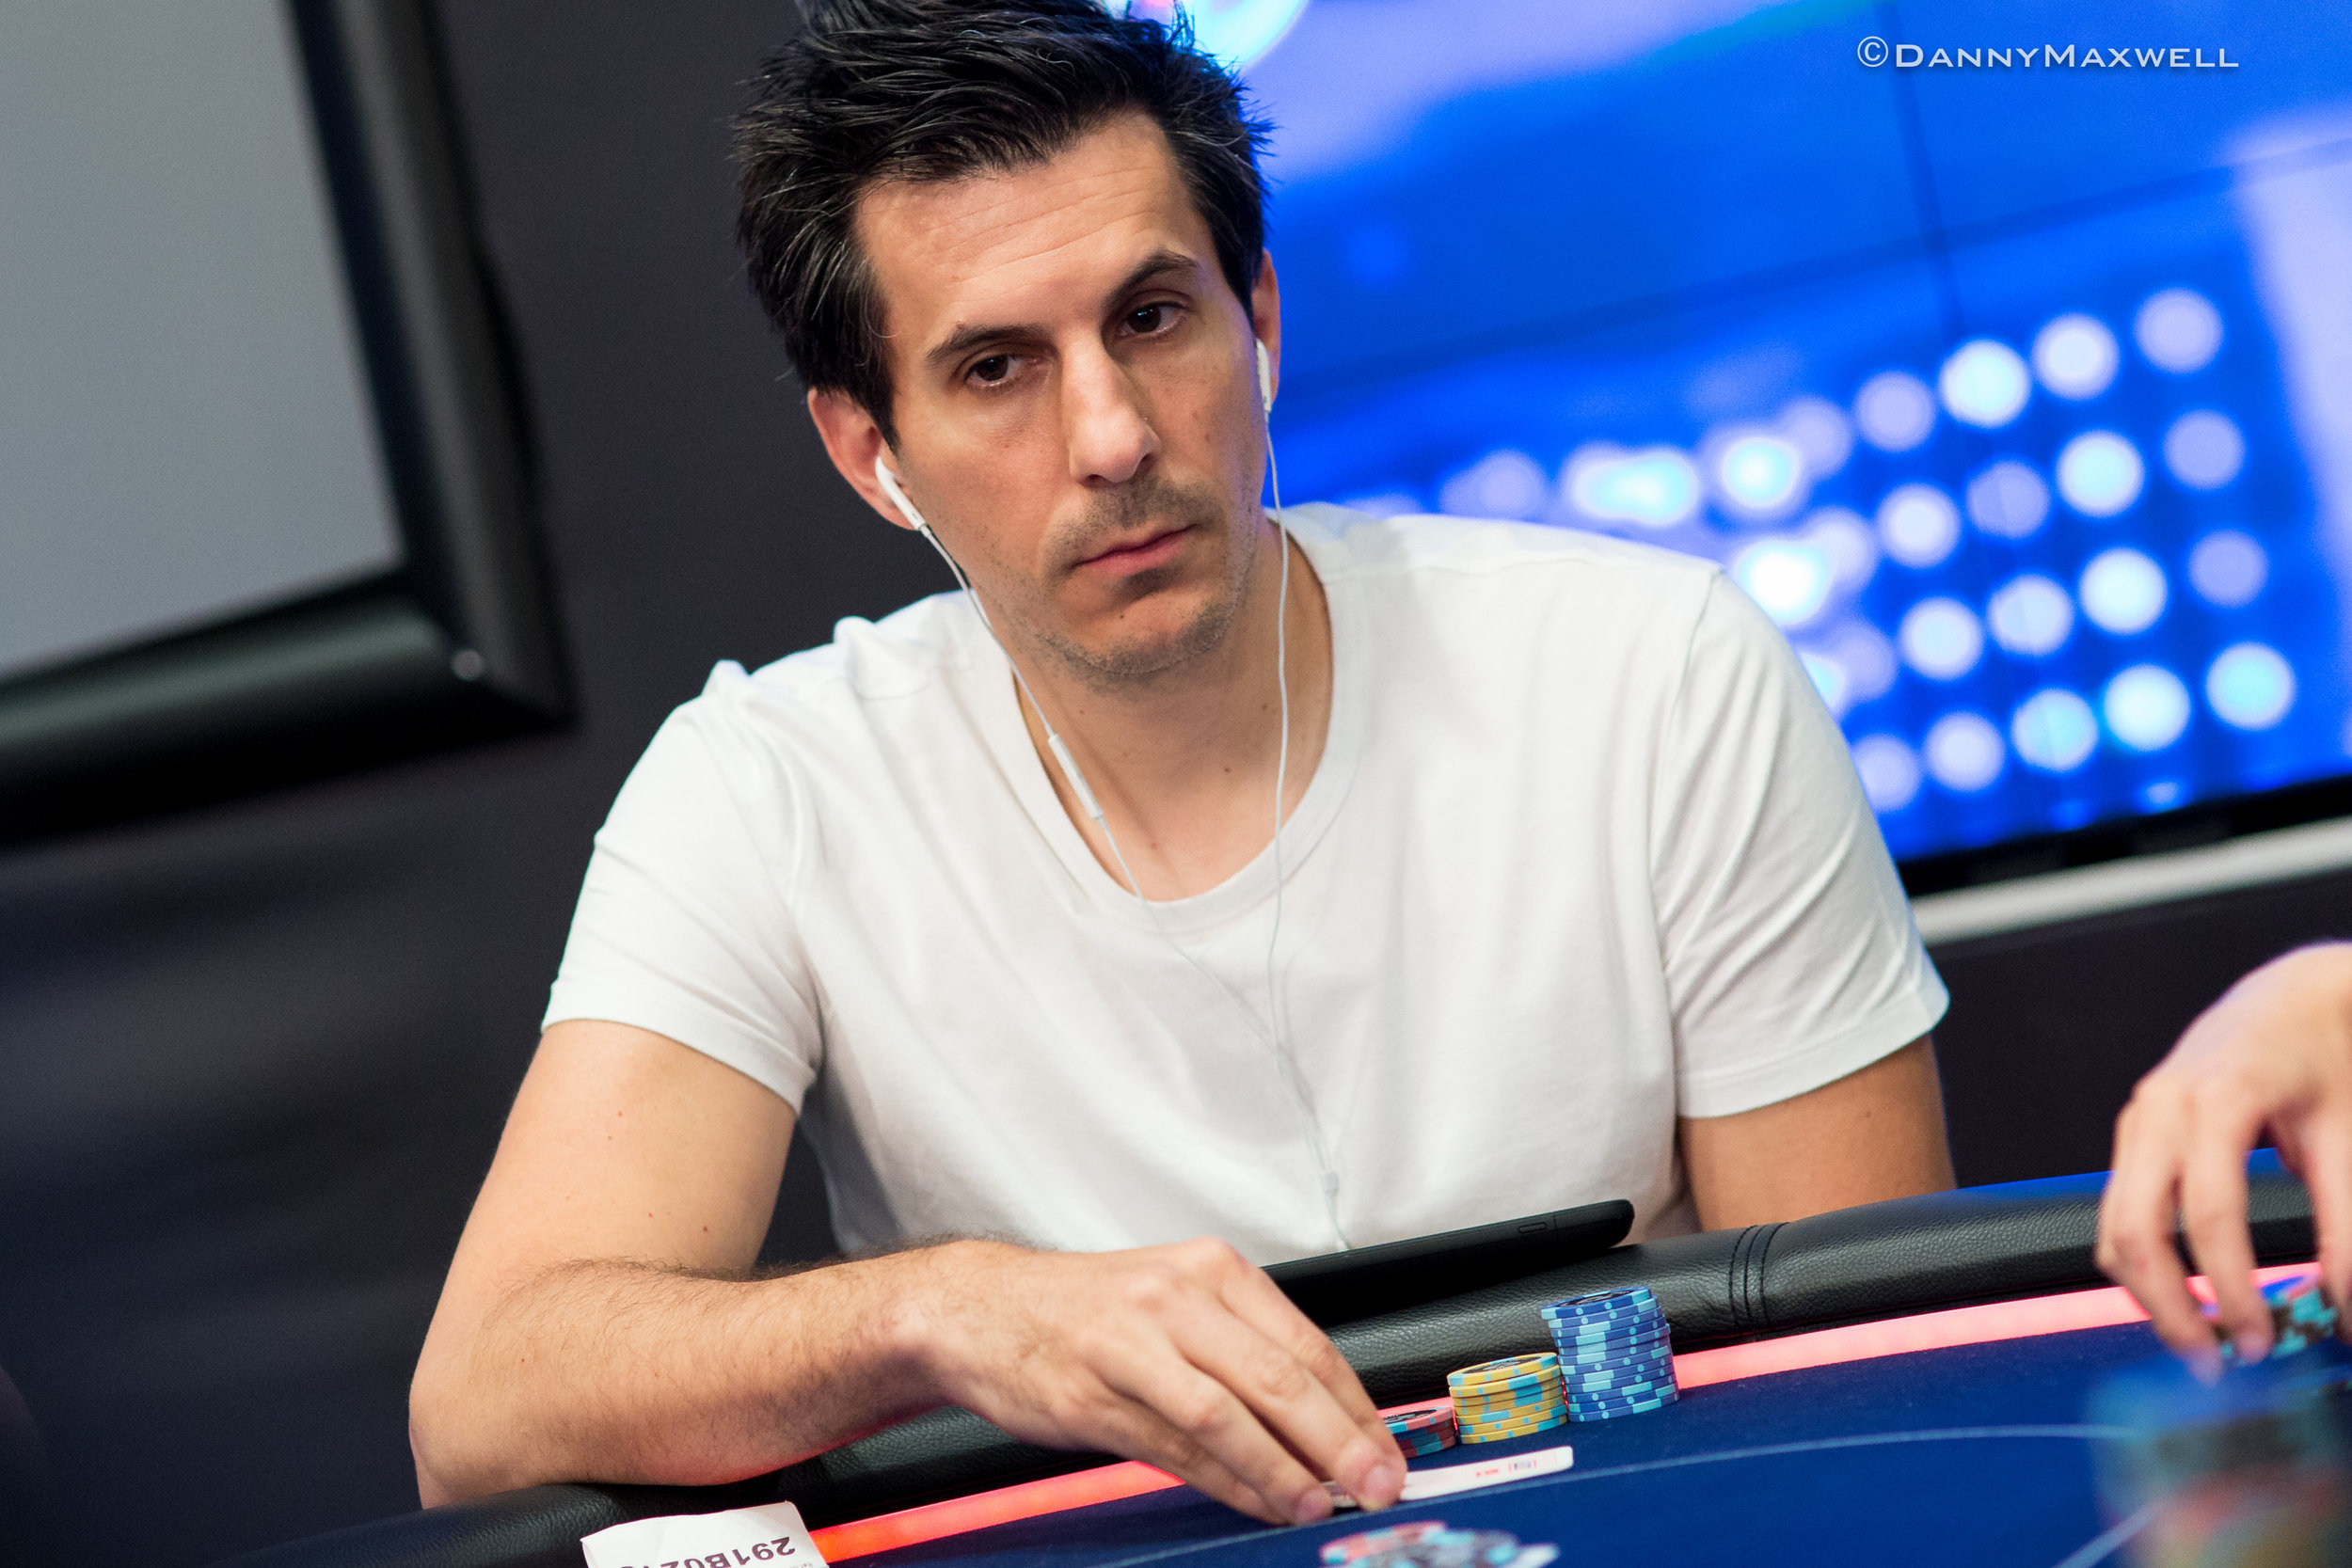 Voulgaris at another Poker event. Credit: Danny Maxwell